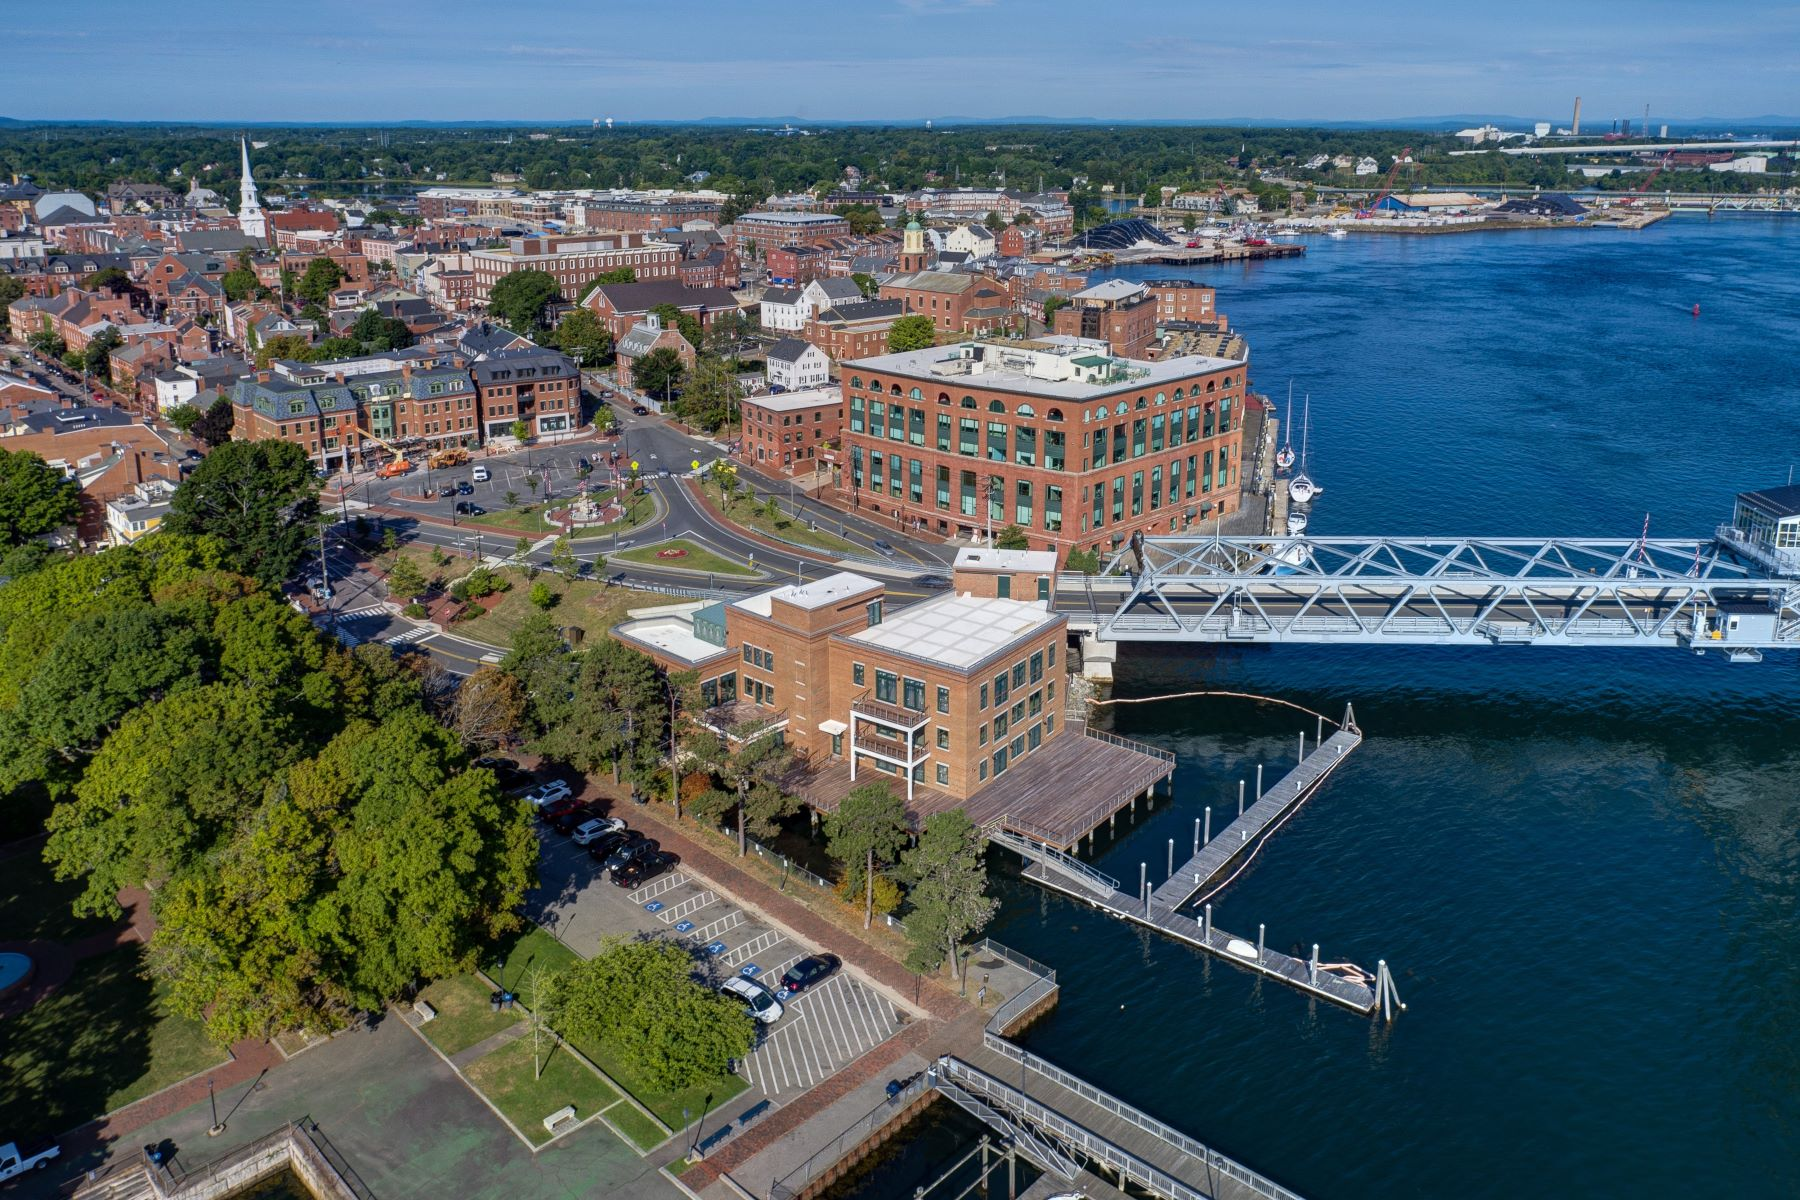 Кондоминиум для того Продажа на Luxury Waterfront Condominium in Downtown Portsmouth 10 State Street Unit B Portsmouth, Нью-Гэмпшир 03801 Соединенные Штаты